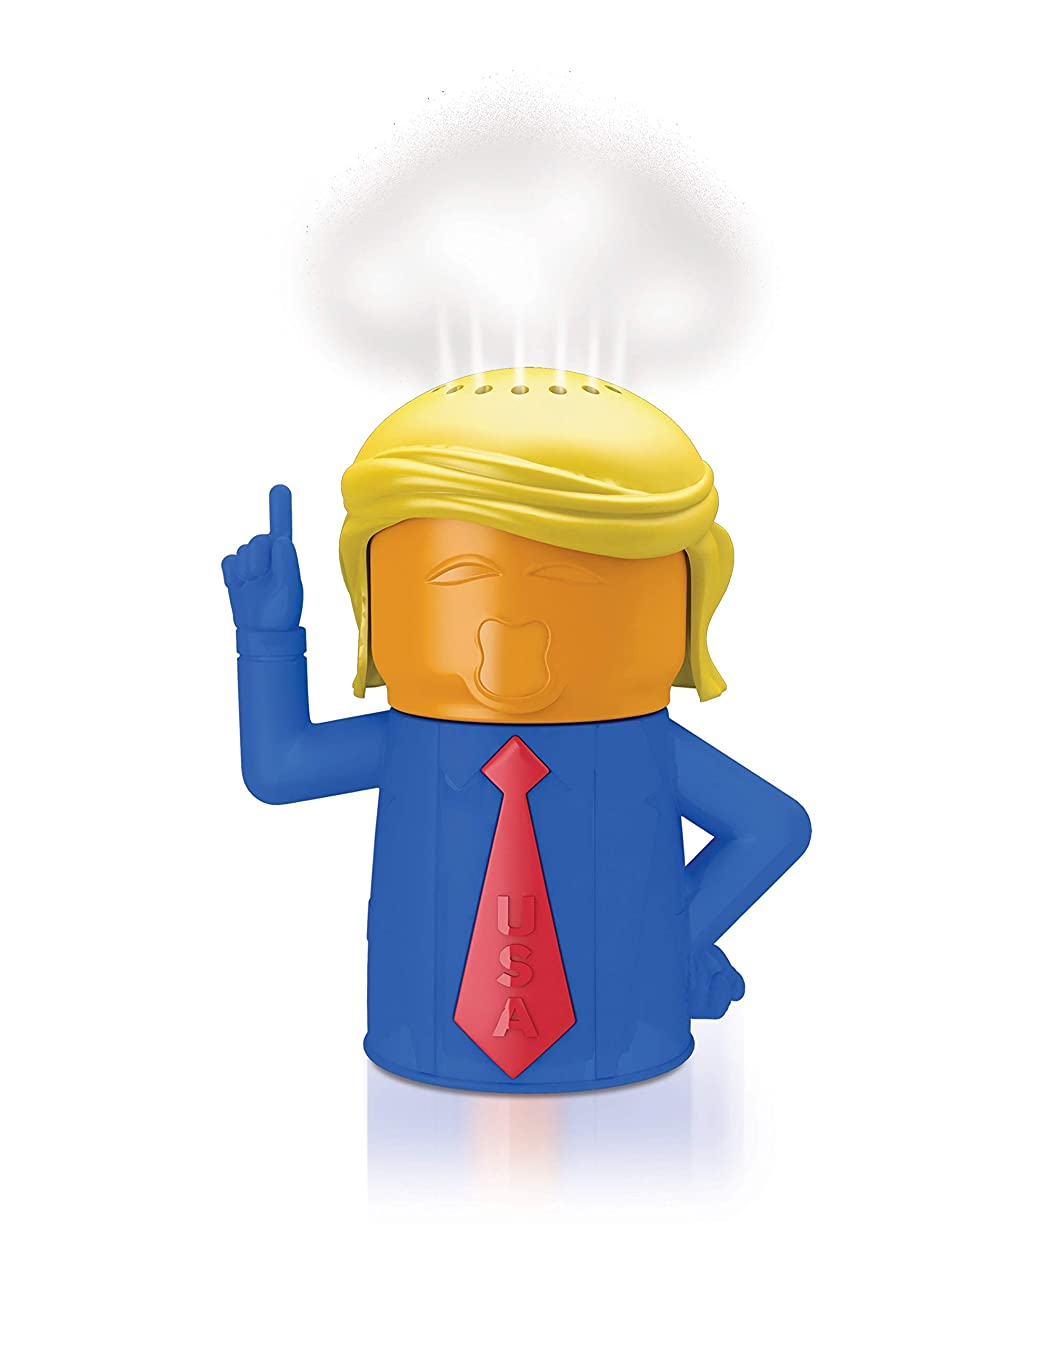 New Metro Design MAGA Angry POTUS Microwave cleaner, It's It's HUGE